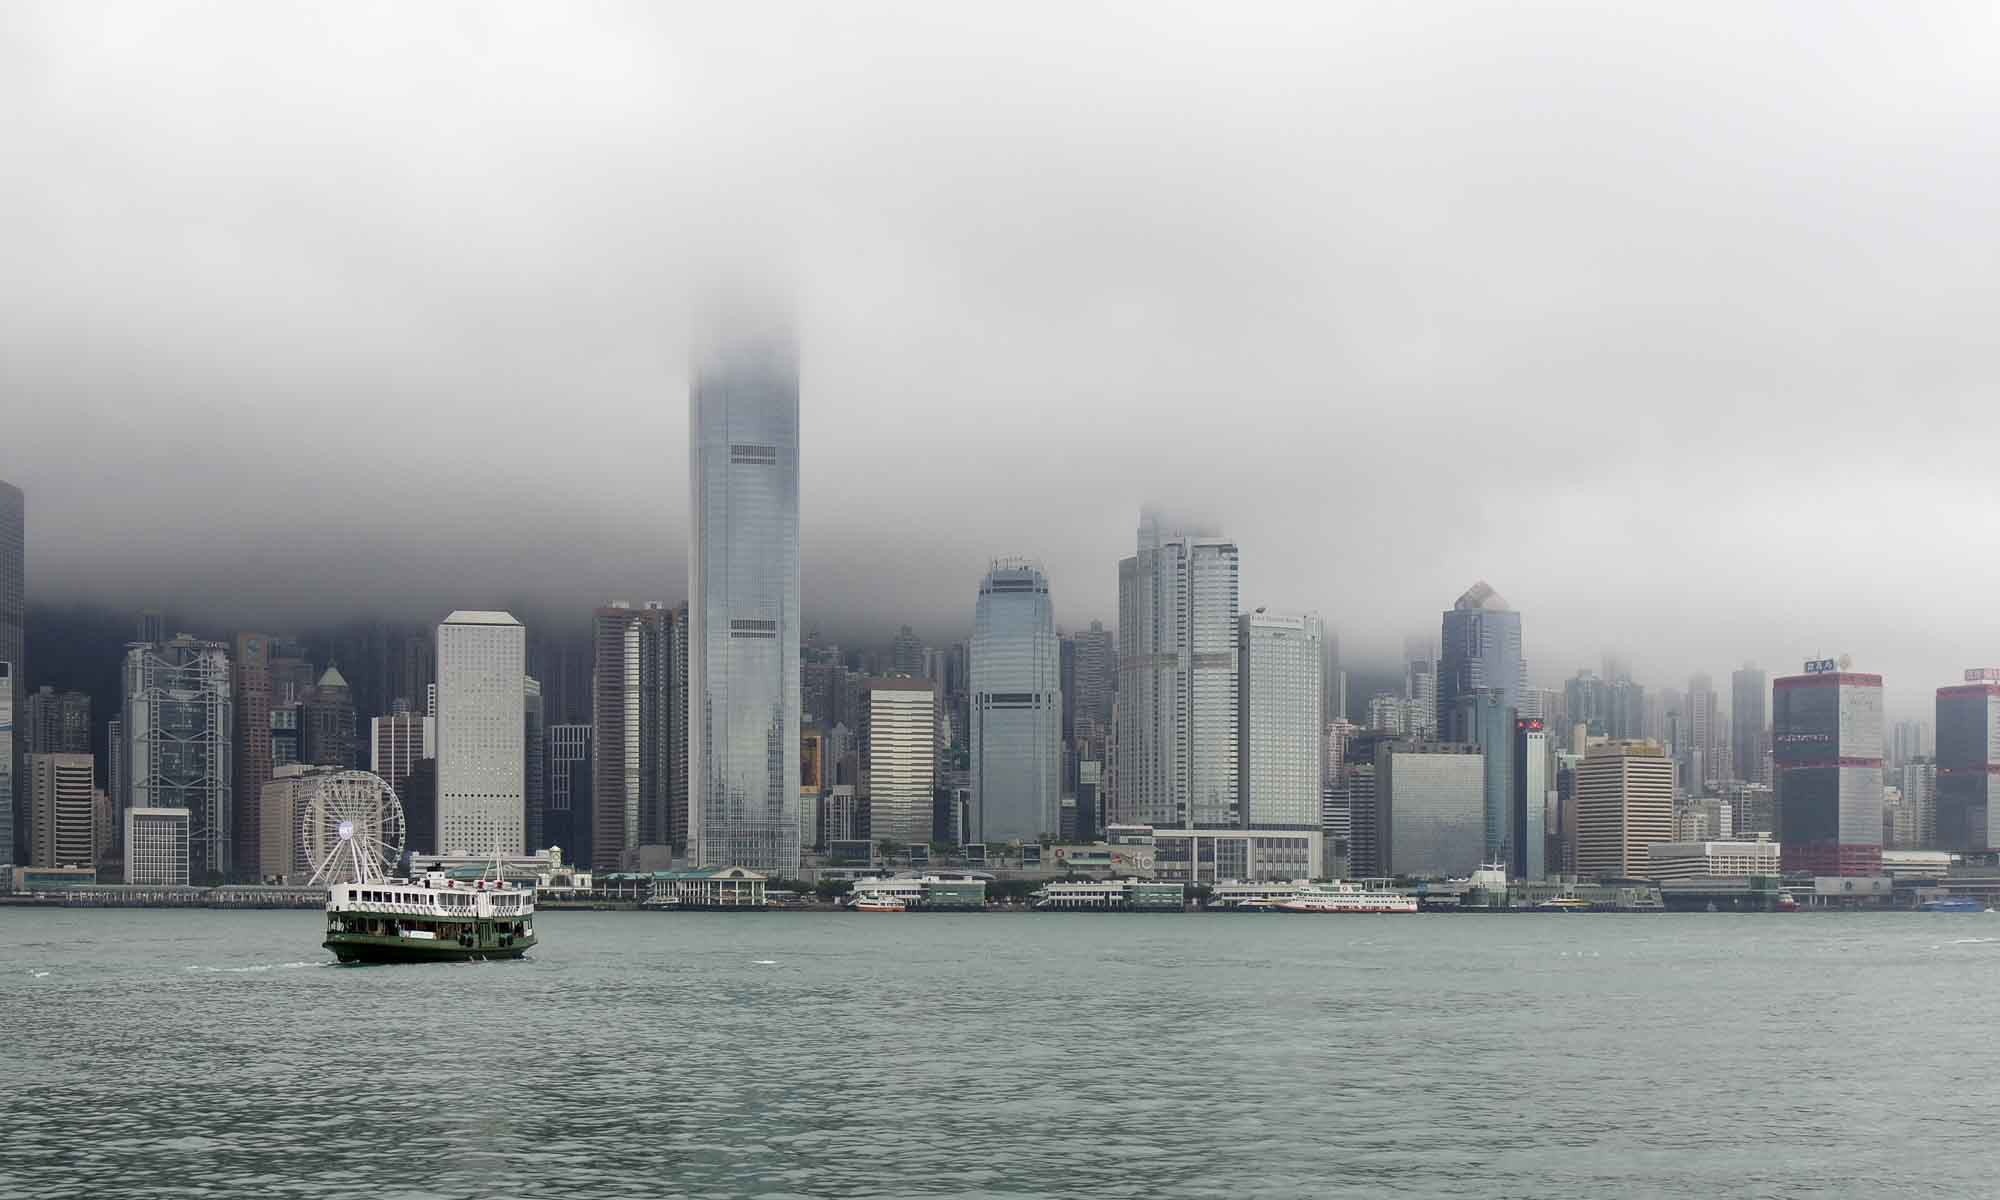 Viewed from Kowloon: Hong Kong Island in the clouds